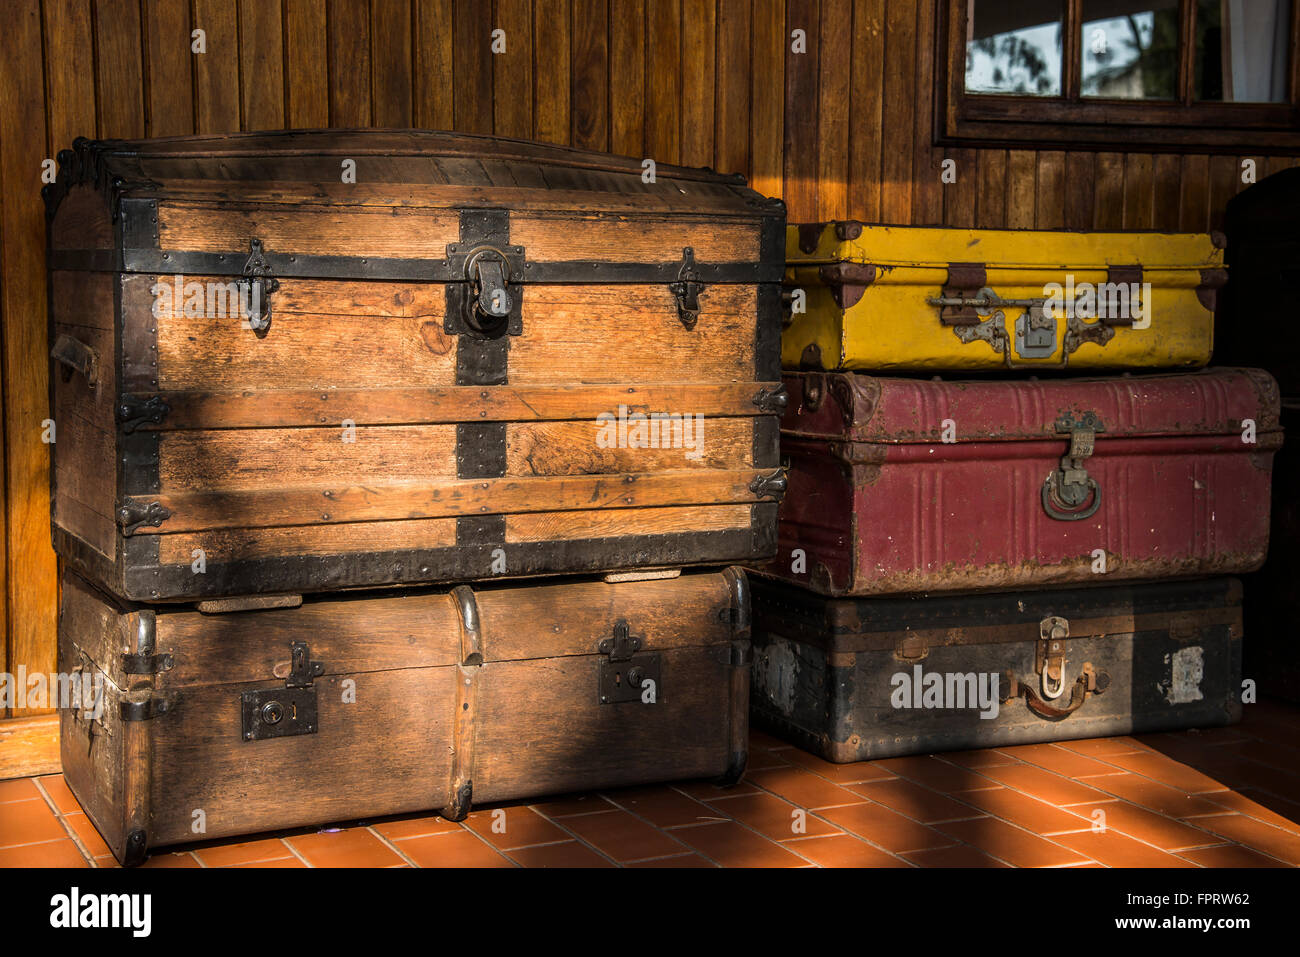 Vintage luggage, Coach house, Tzaneen, Limpopo, South Africa, Africa - Stock Image